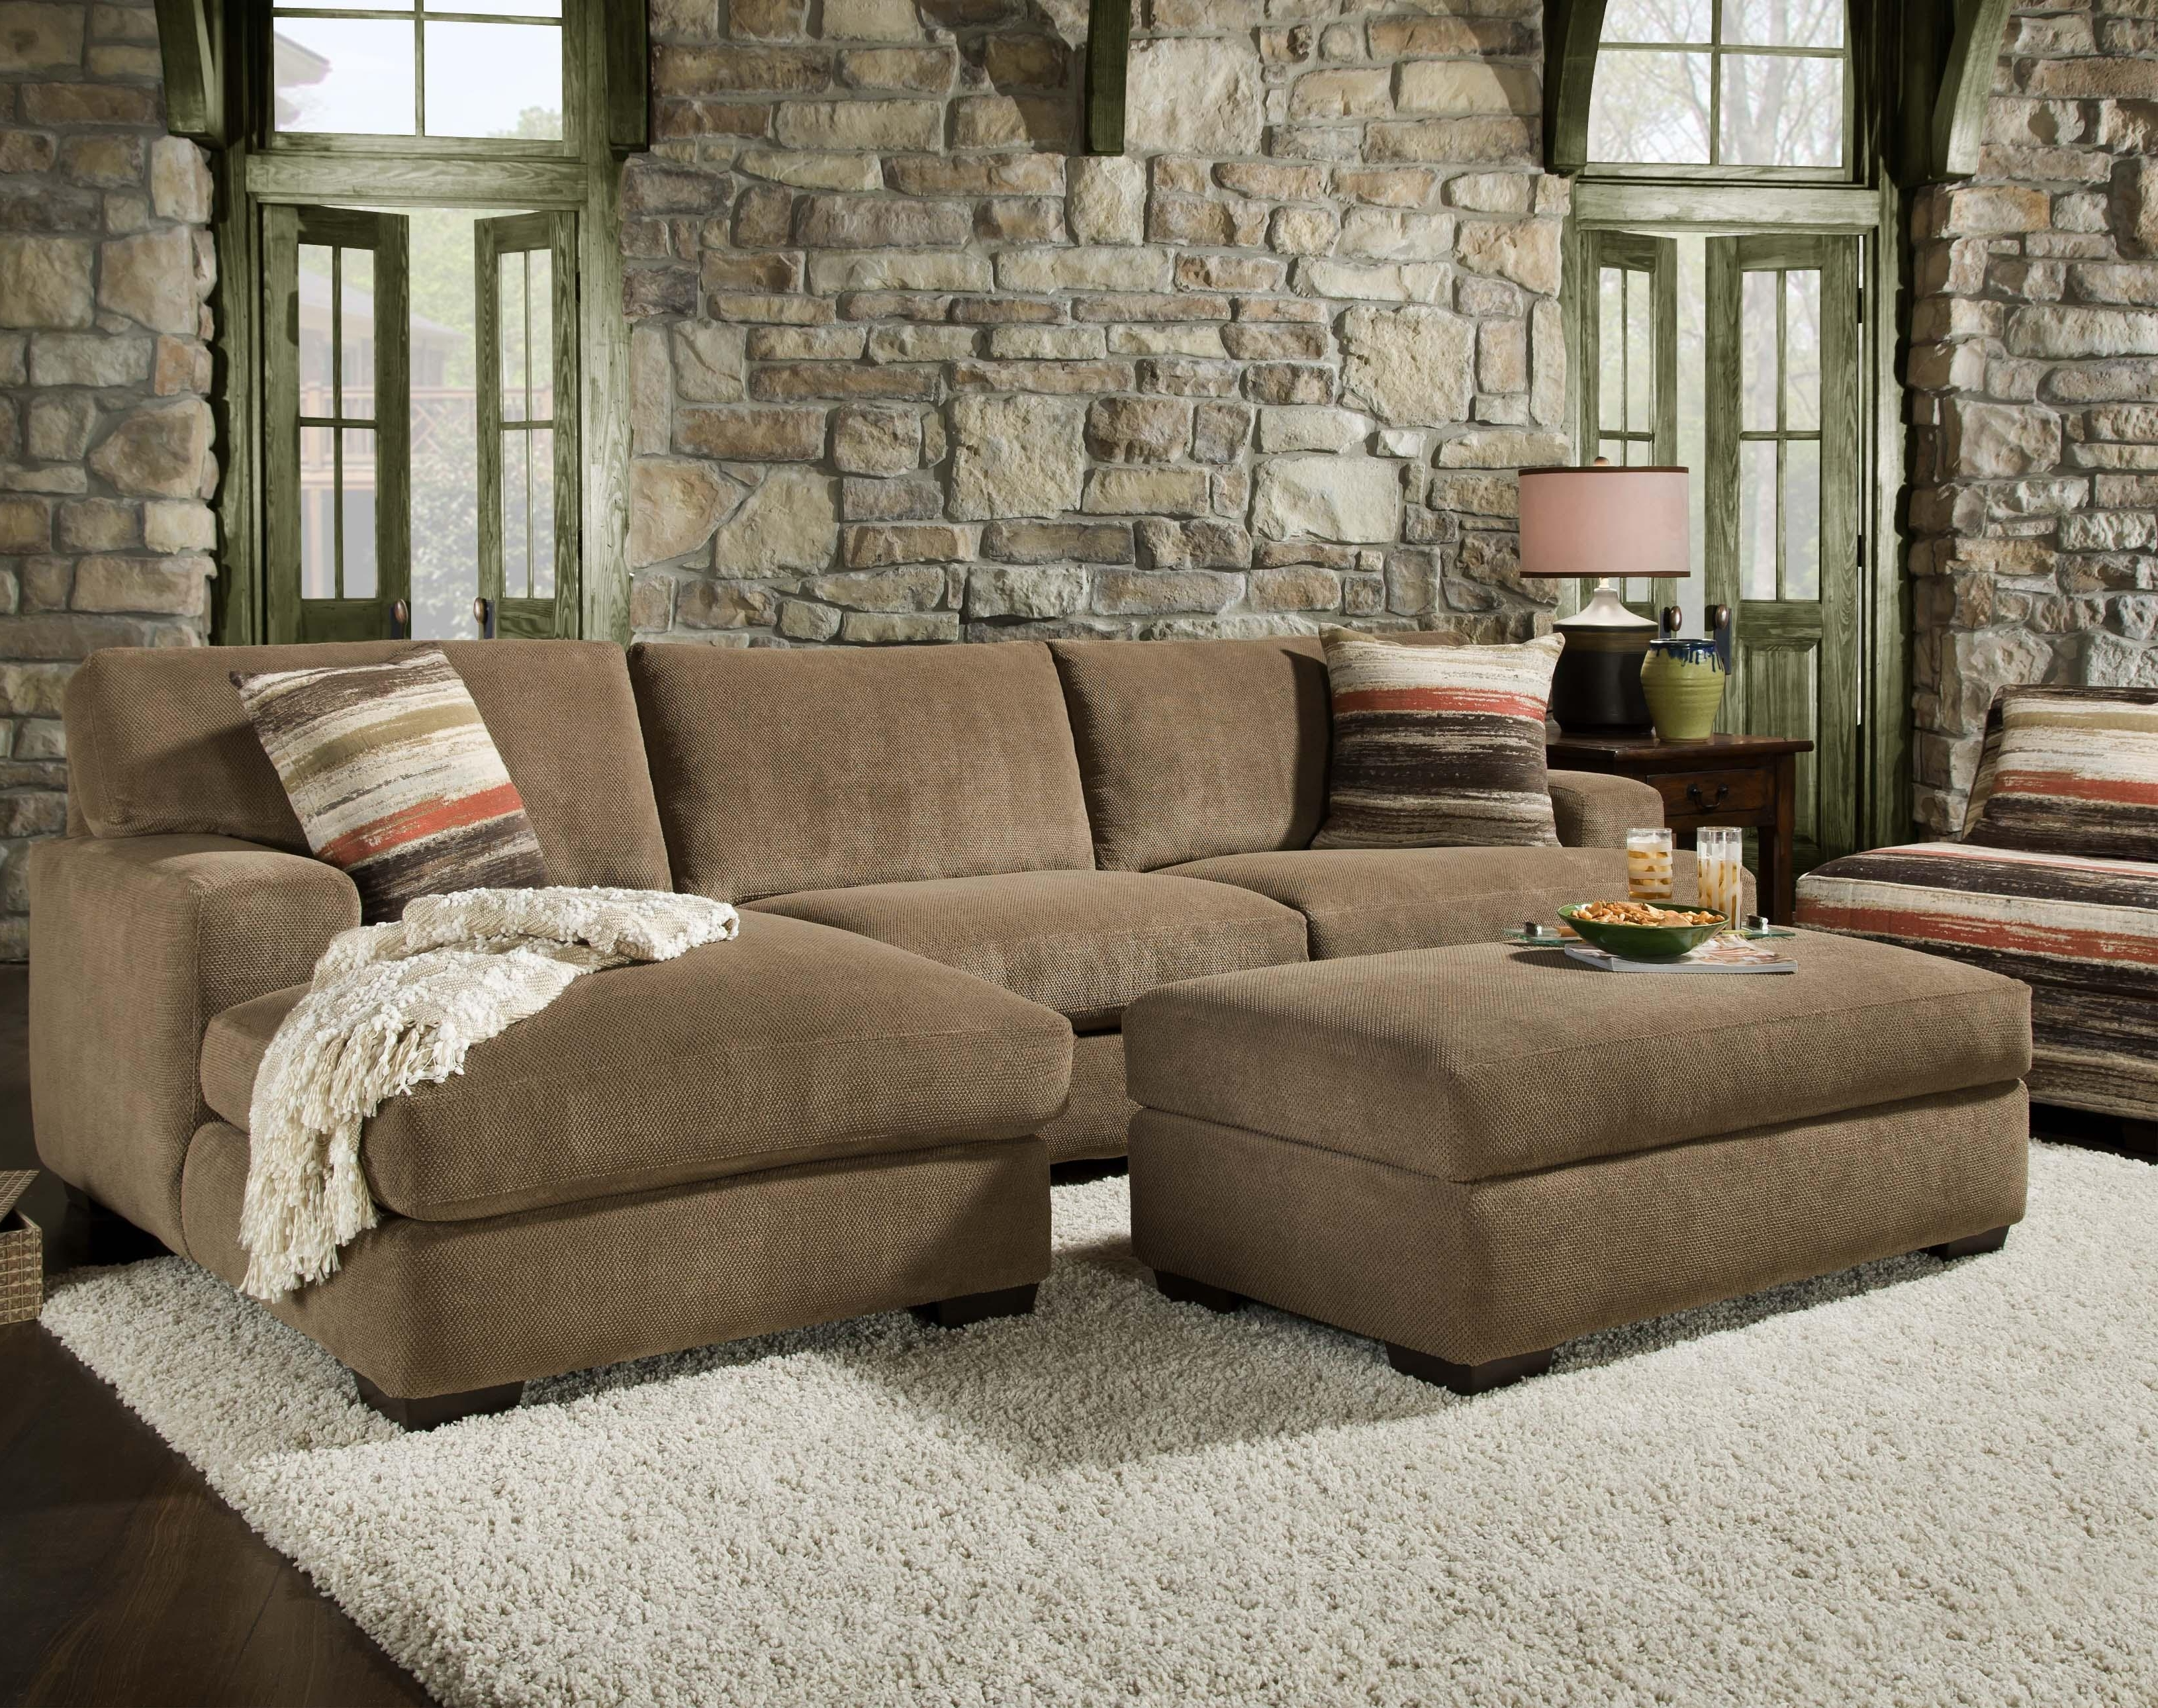 48B0 Small Sectional With Chaisecorinthian (View 3 of 20)